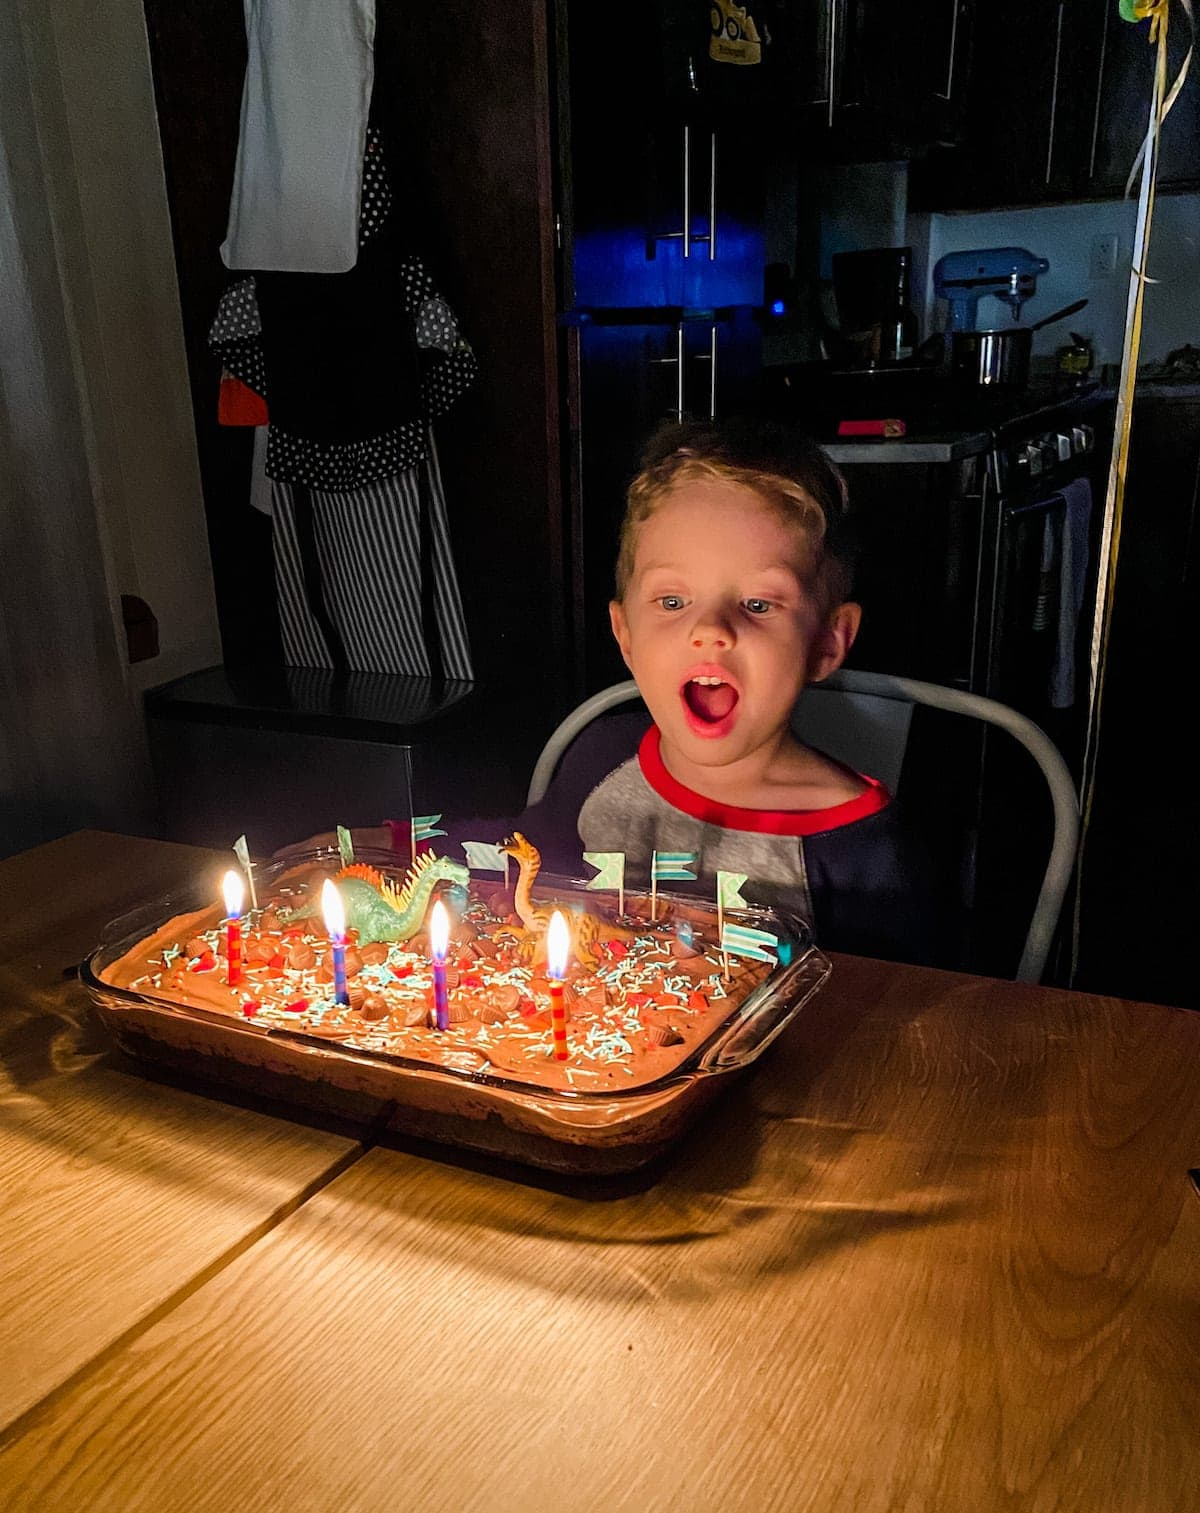 Eddie sitting at a table with a birthday cake with lit candles